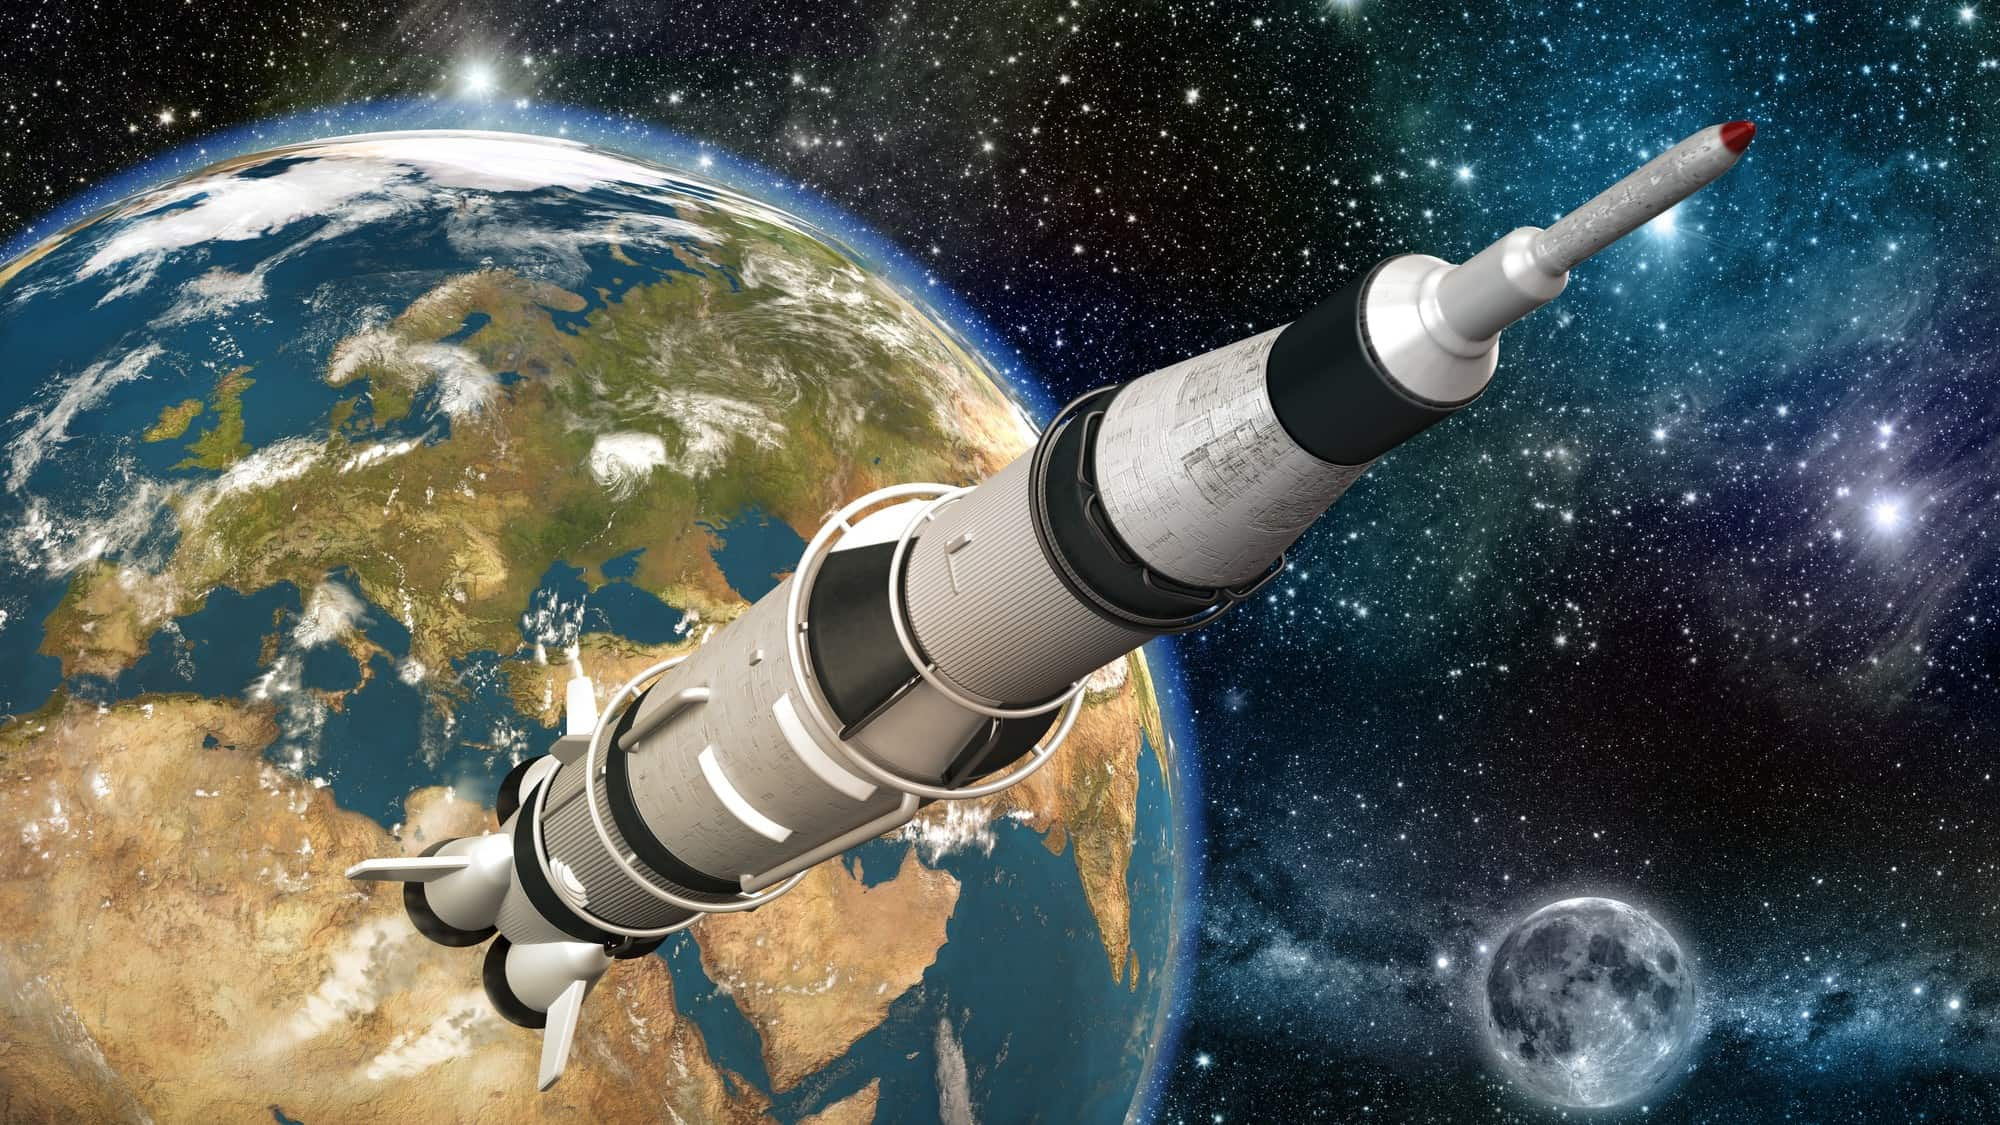 A rockets heads into space, indicating a share price rising 'to the 'moon'